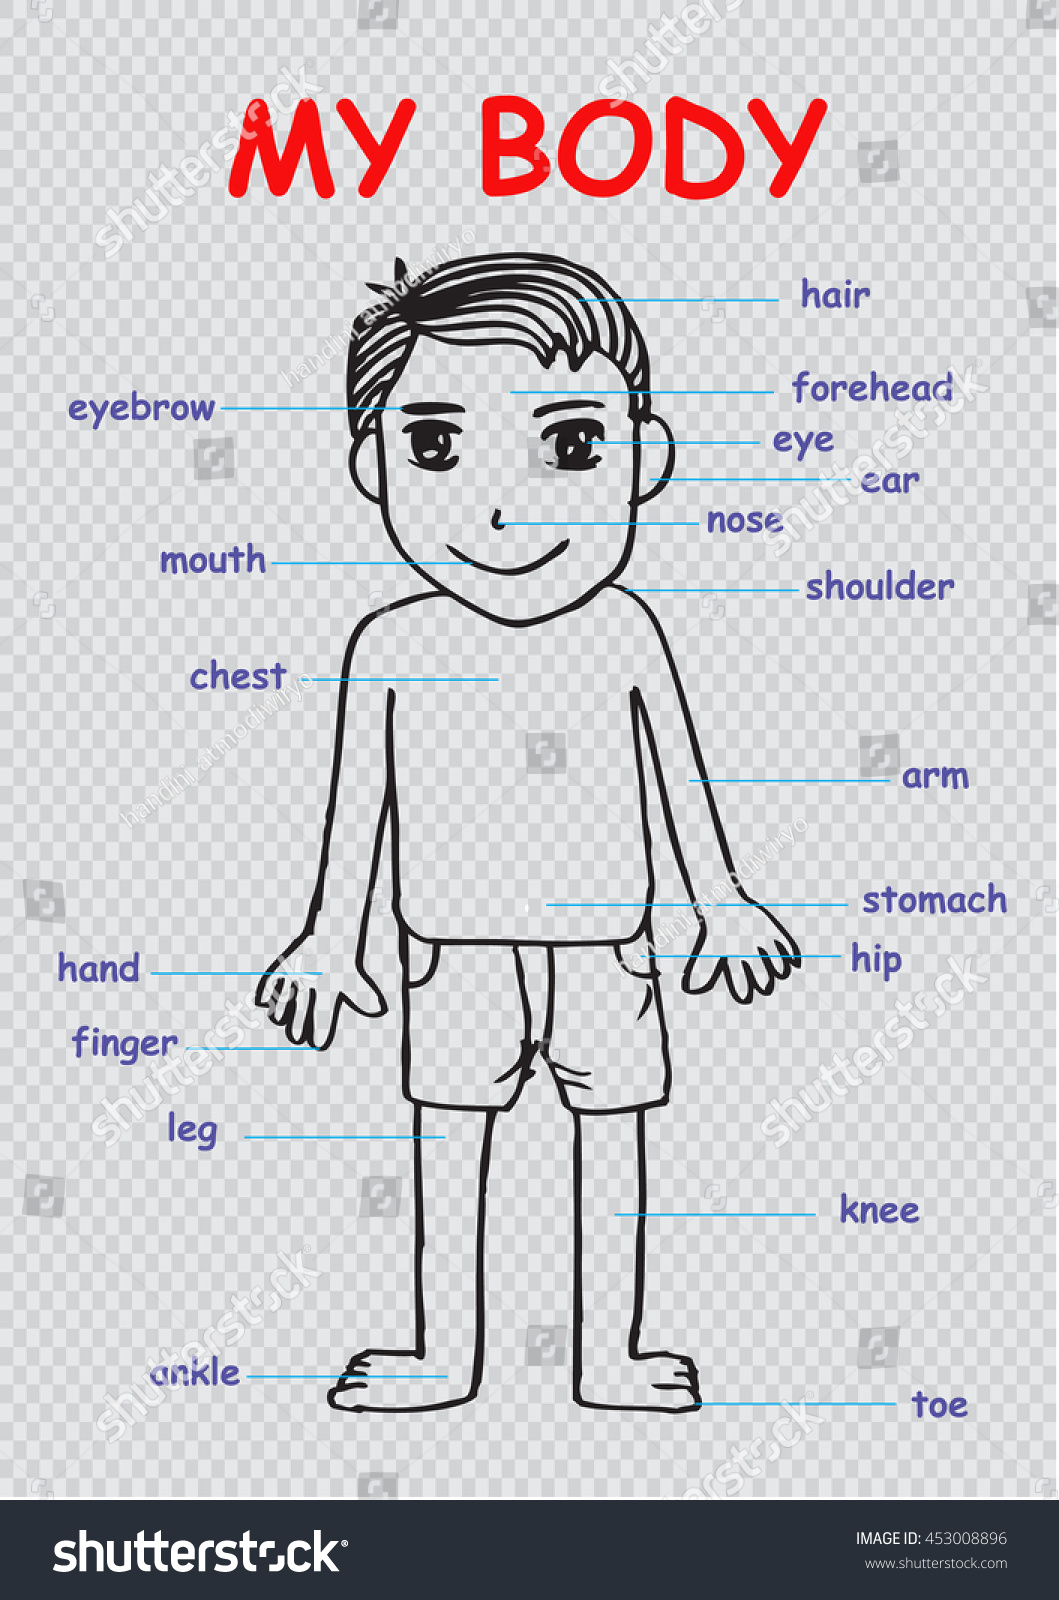 My body educational info graphic chart stock vector 453008896 my body educational info graphic chart for kids showing parts of human body of nvjuhfo Choice Image